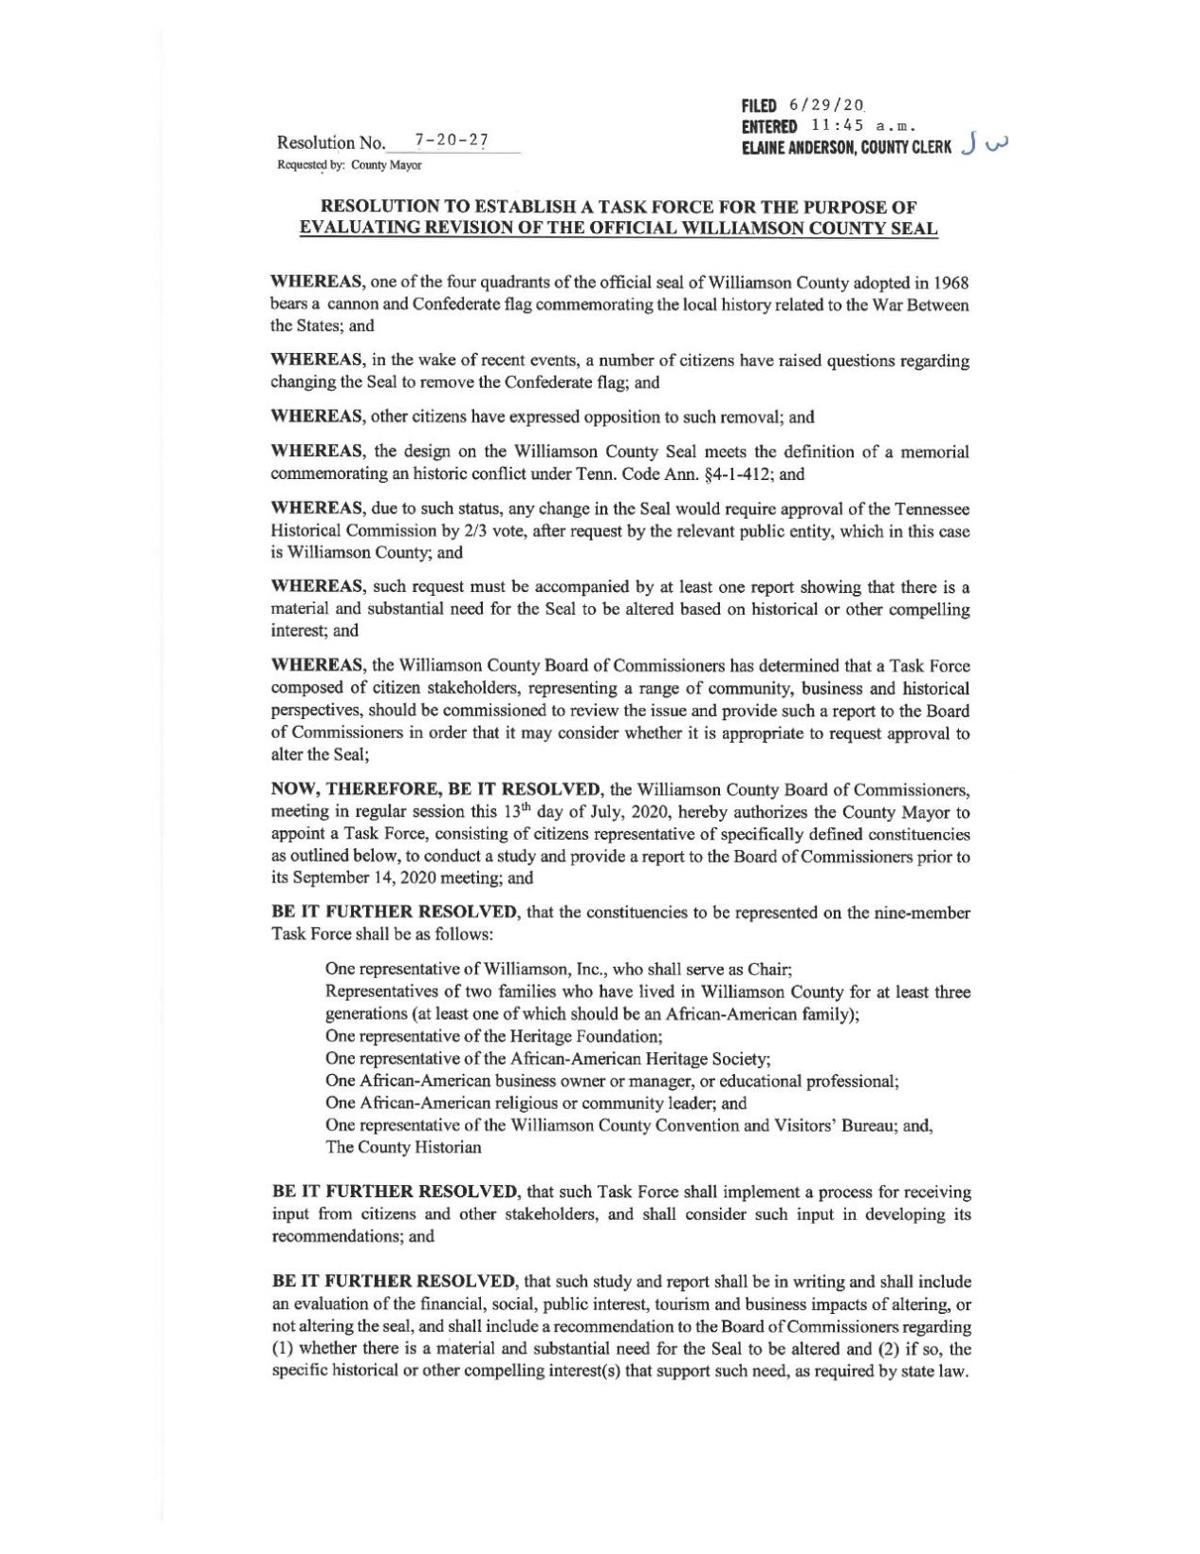 Williamson County Seal Task Force Resolution